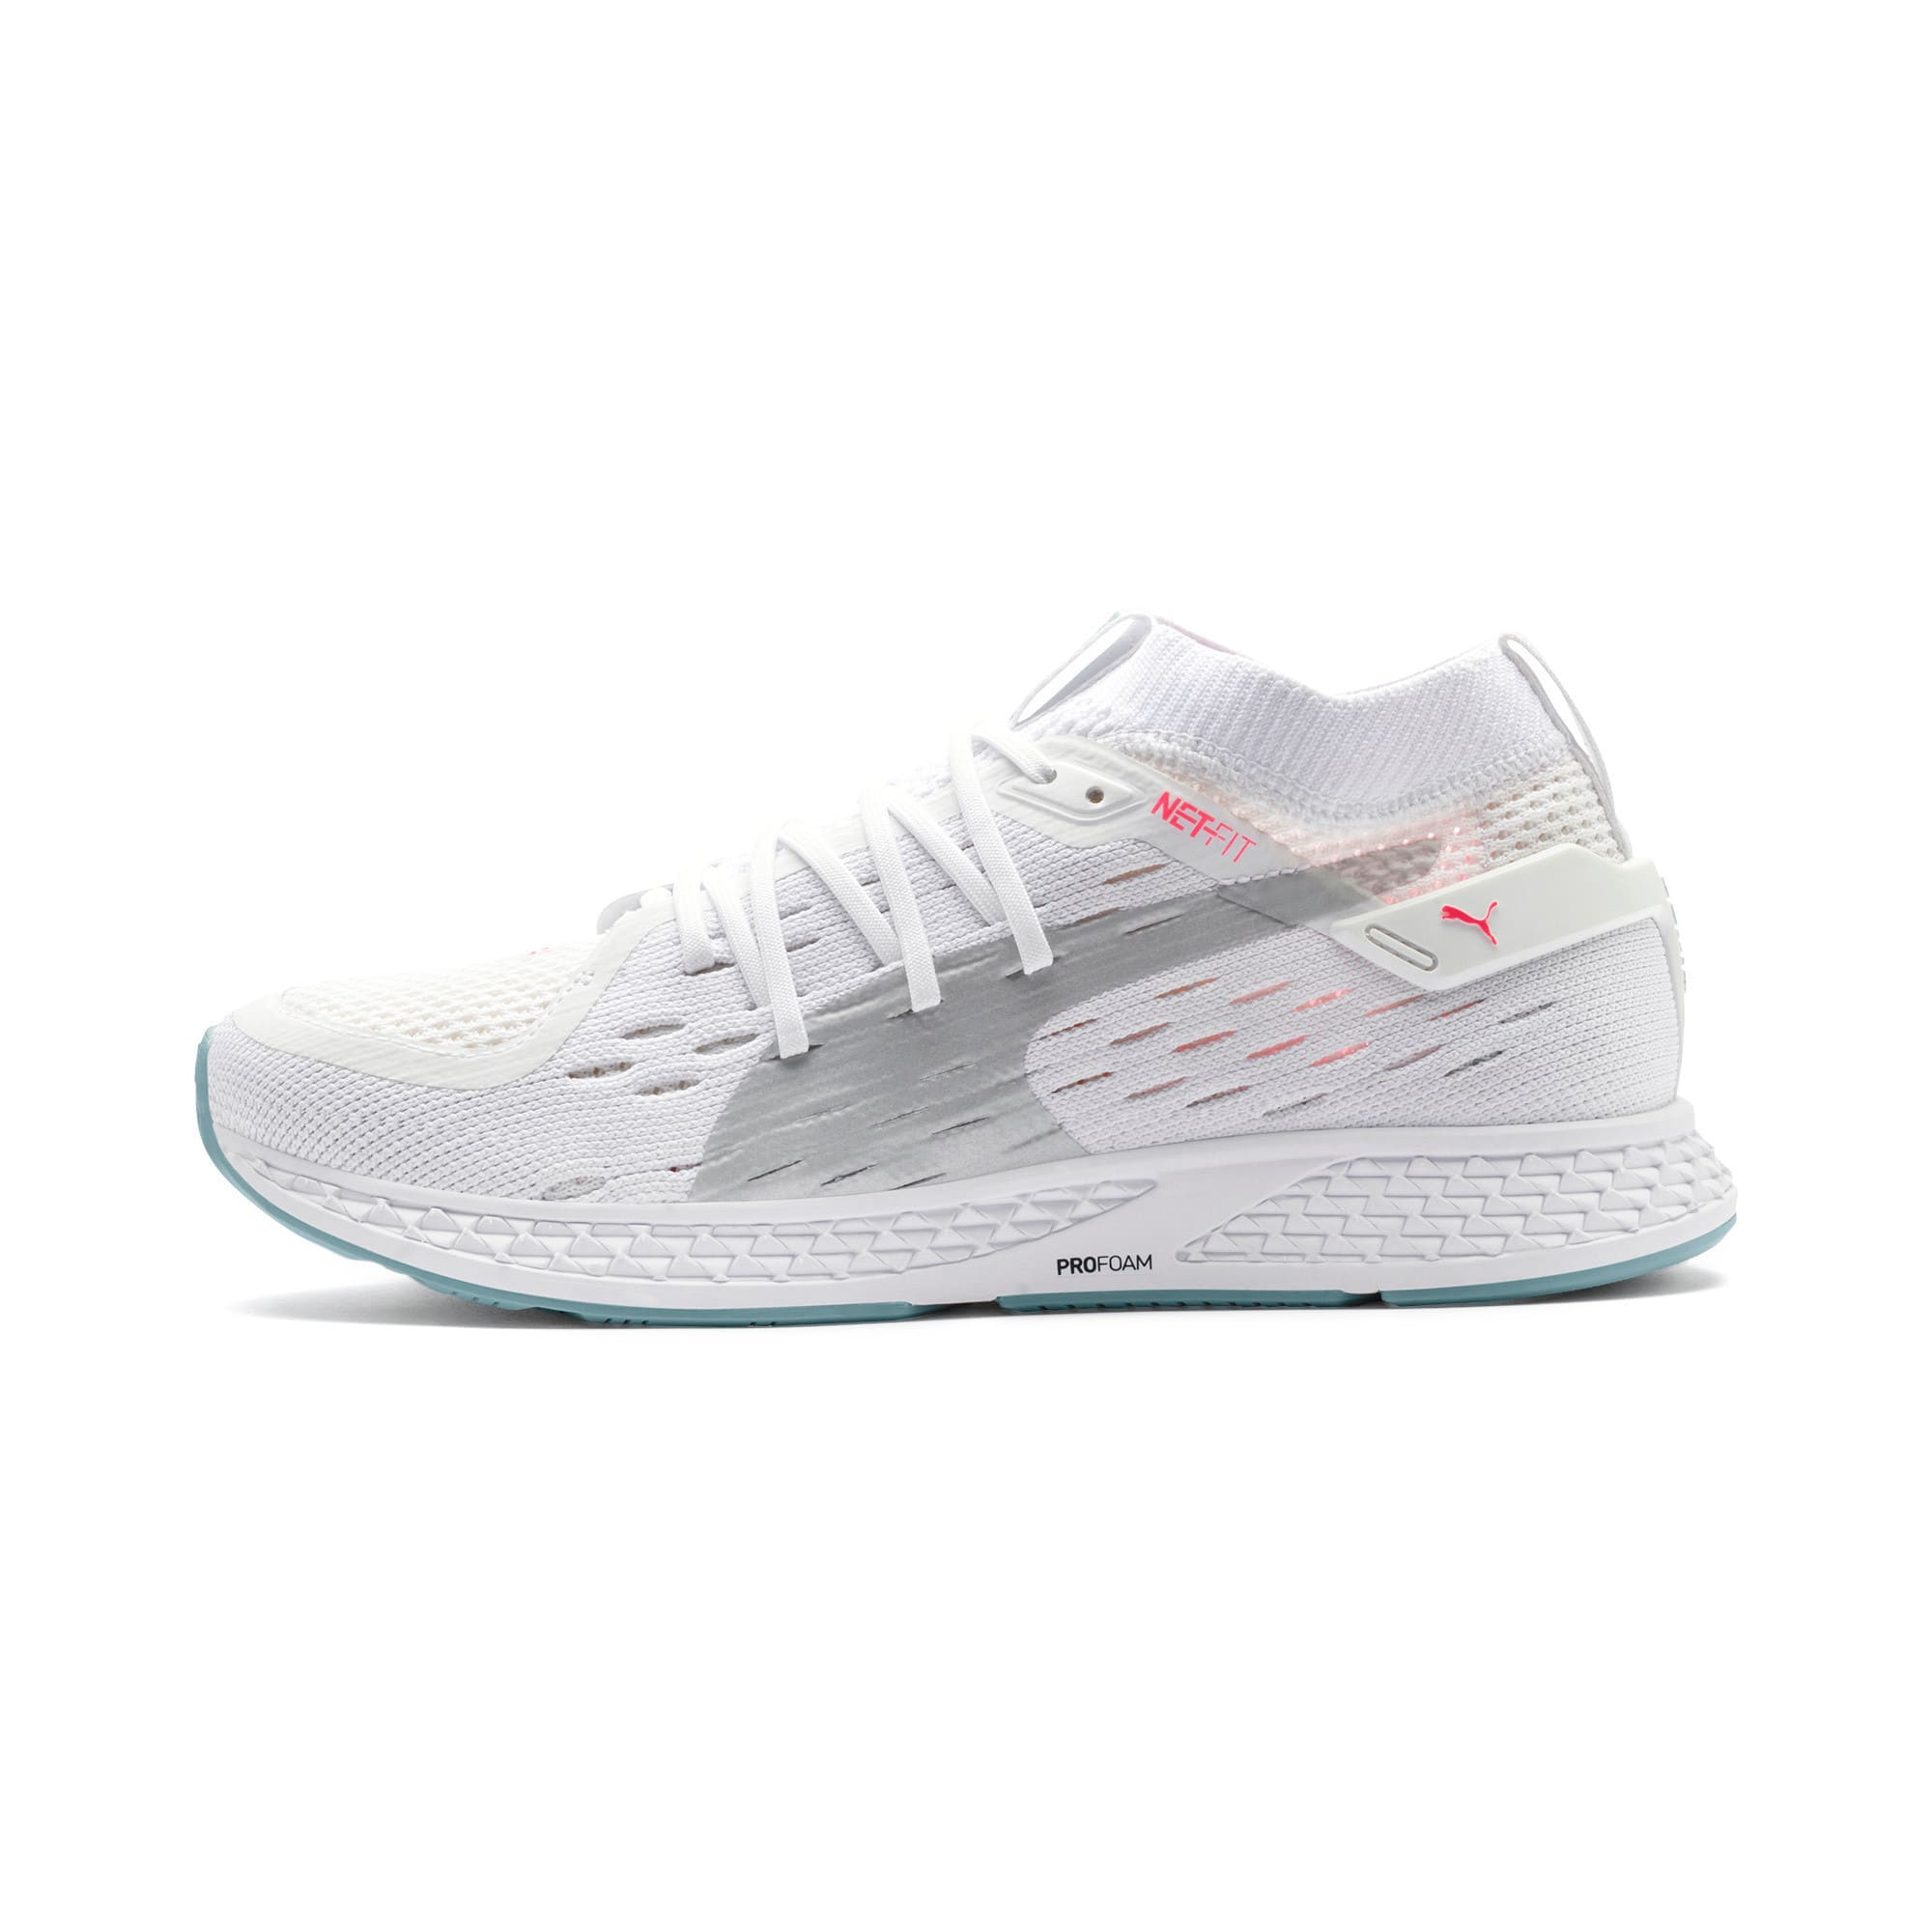 Thumbnail 1 of SPEED 500 Women's Running Shoes, White-Silver-Milky Blue-Pink, medium